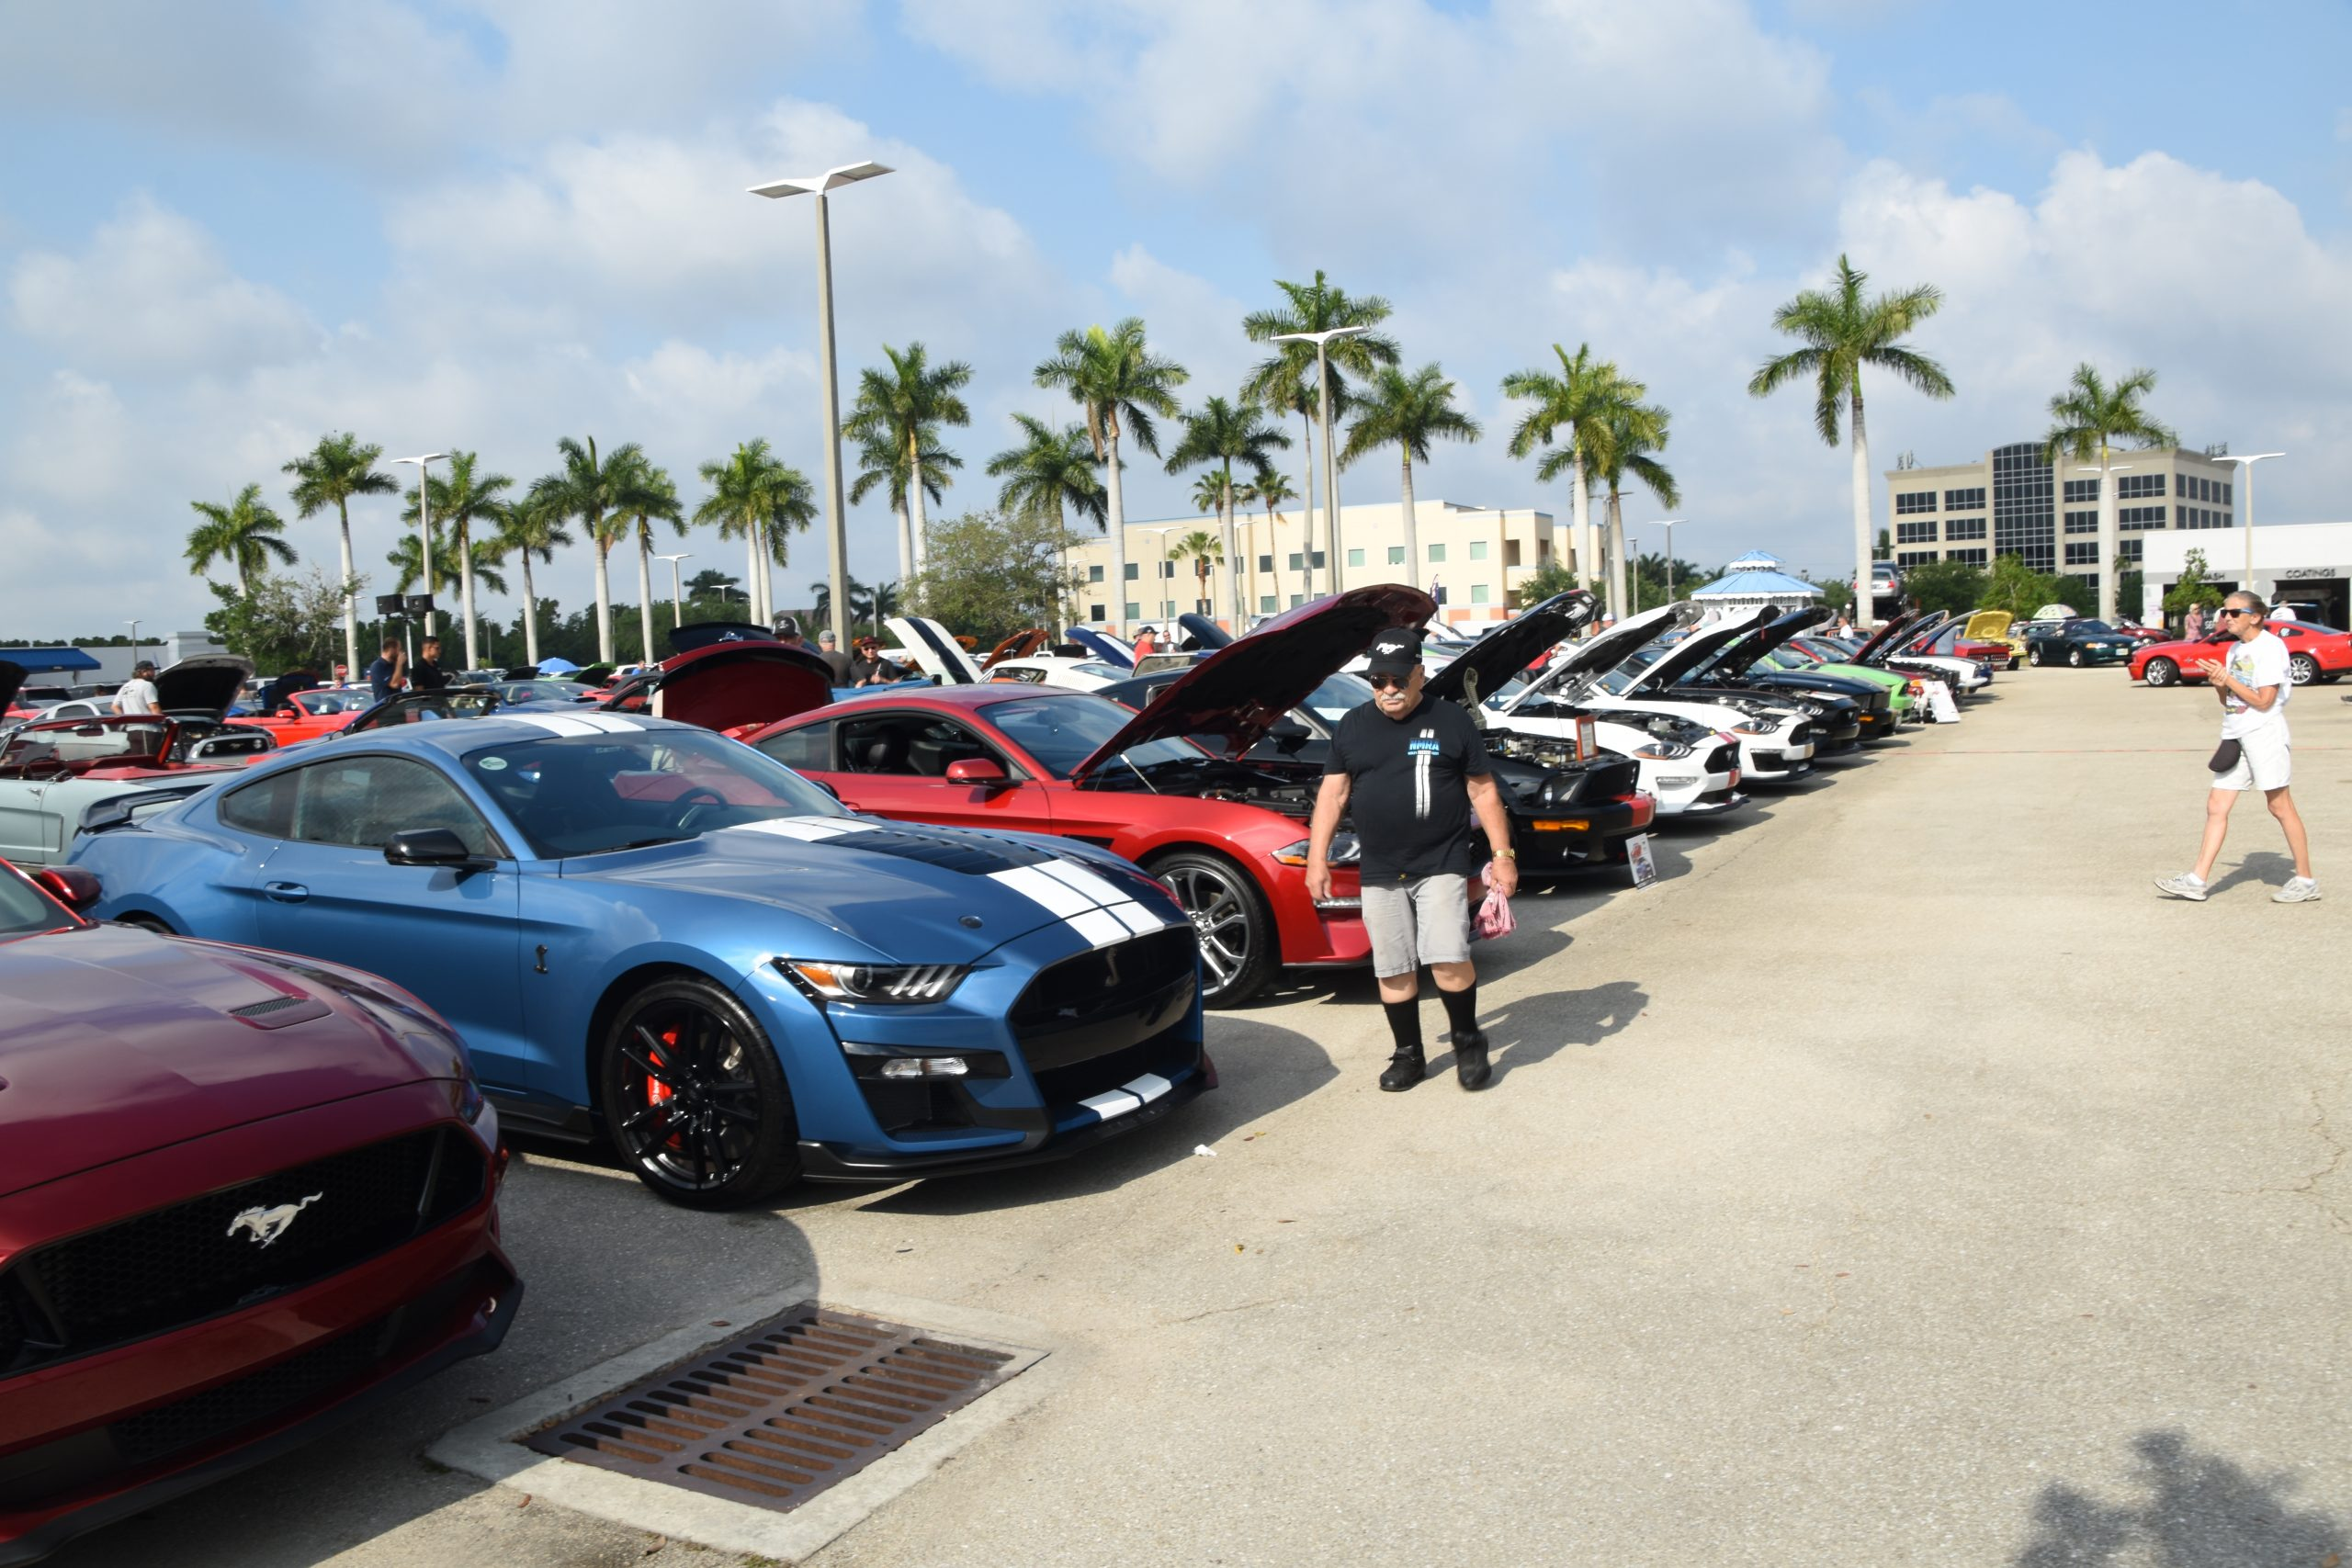 Row of Mustangs with hoods up